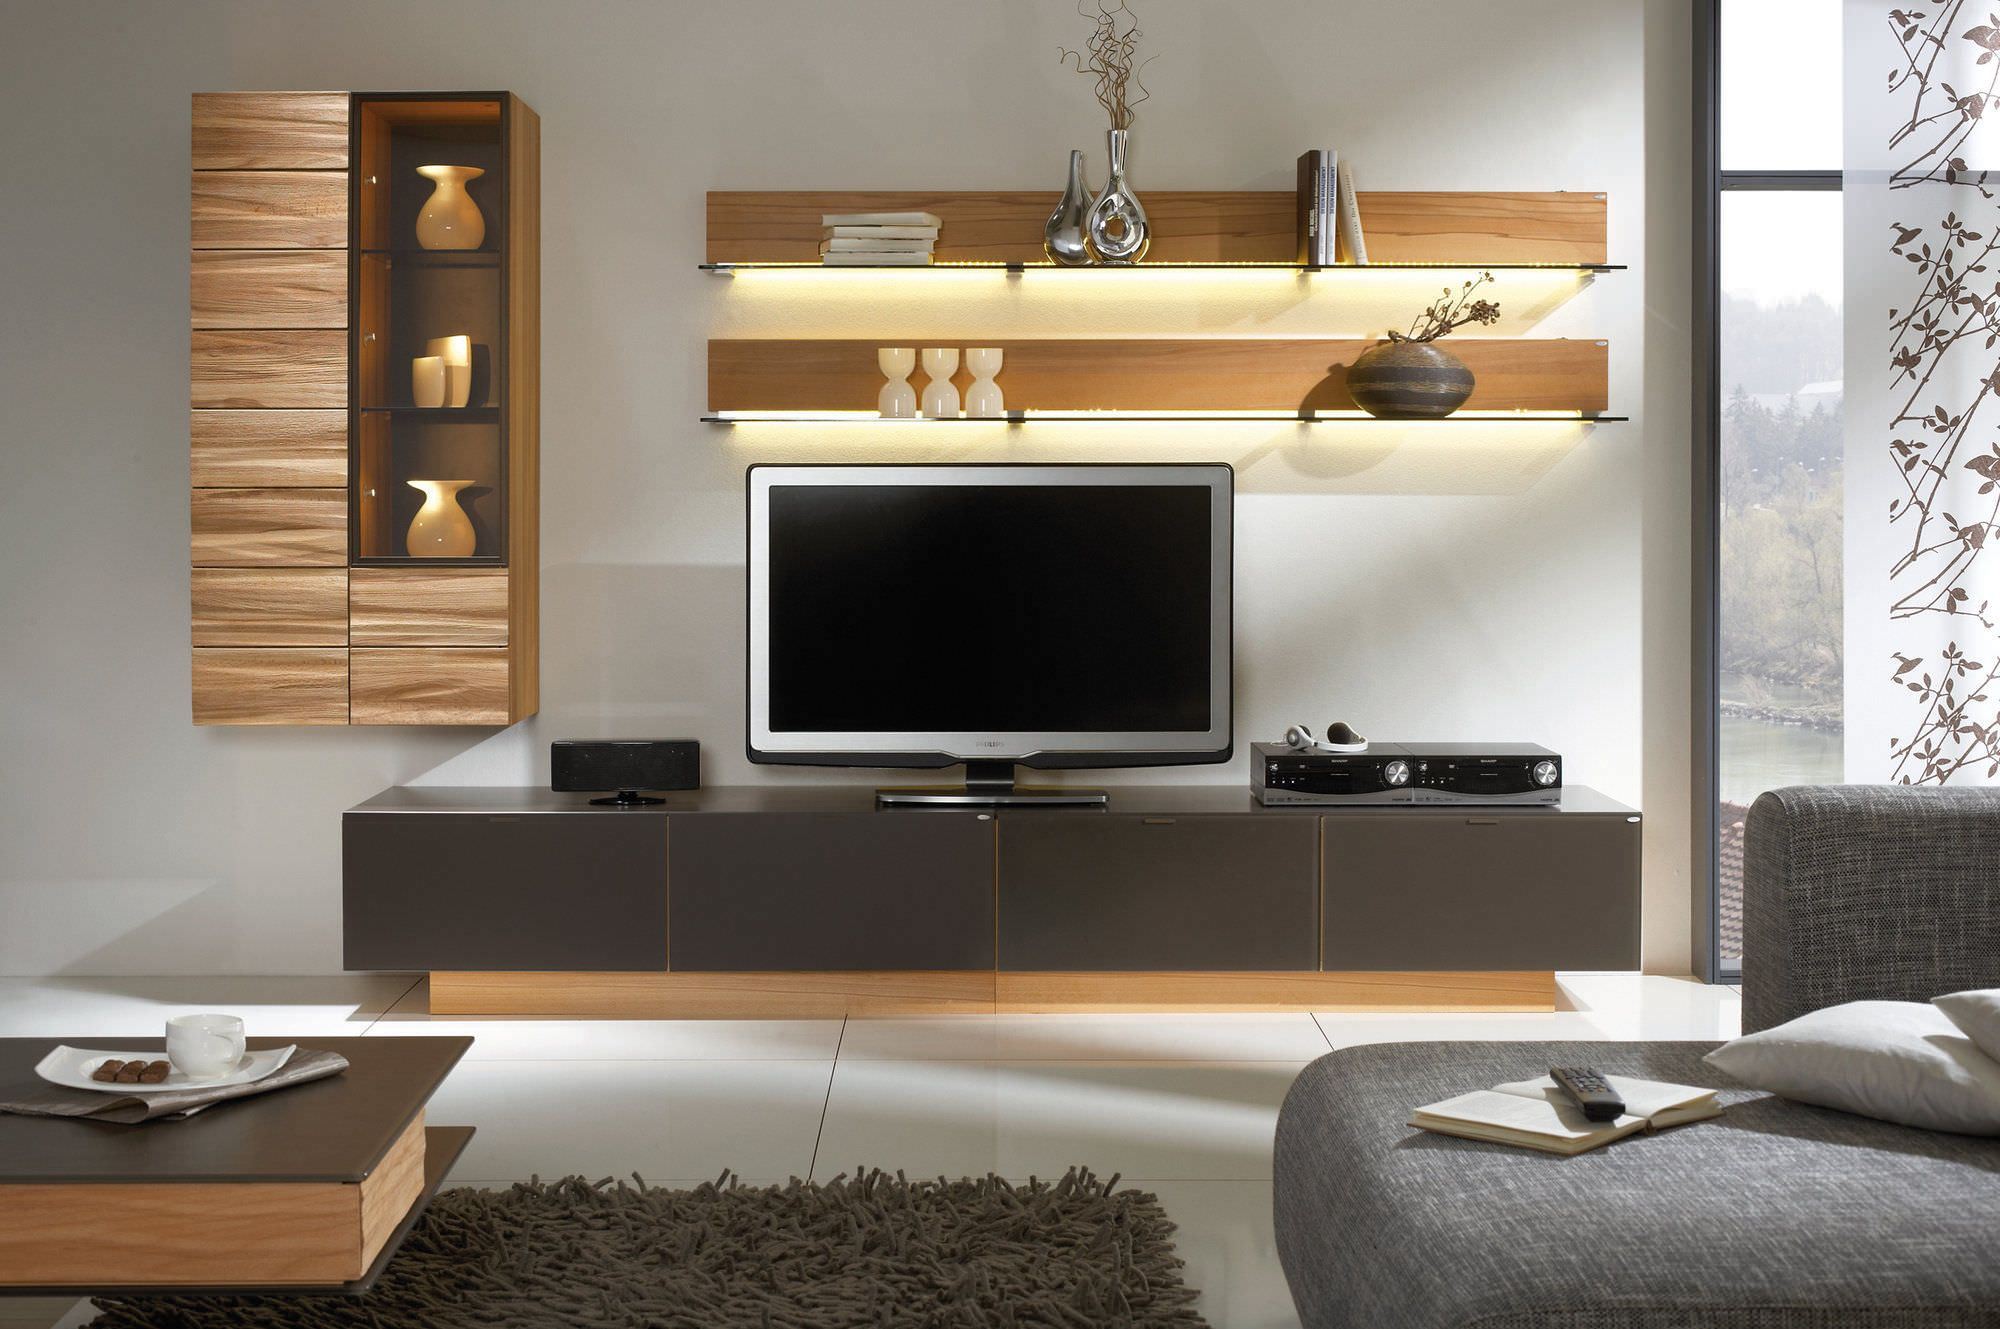 Awesome white brown wood glass cool design contemporary tv Wall unit furniture